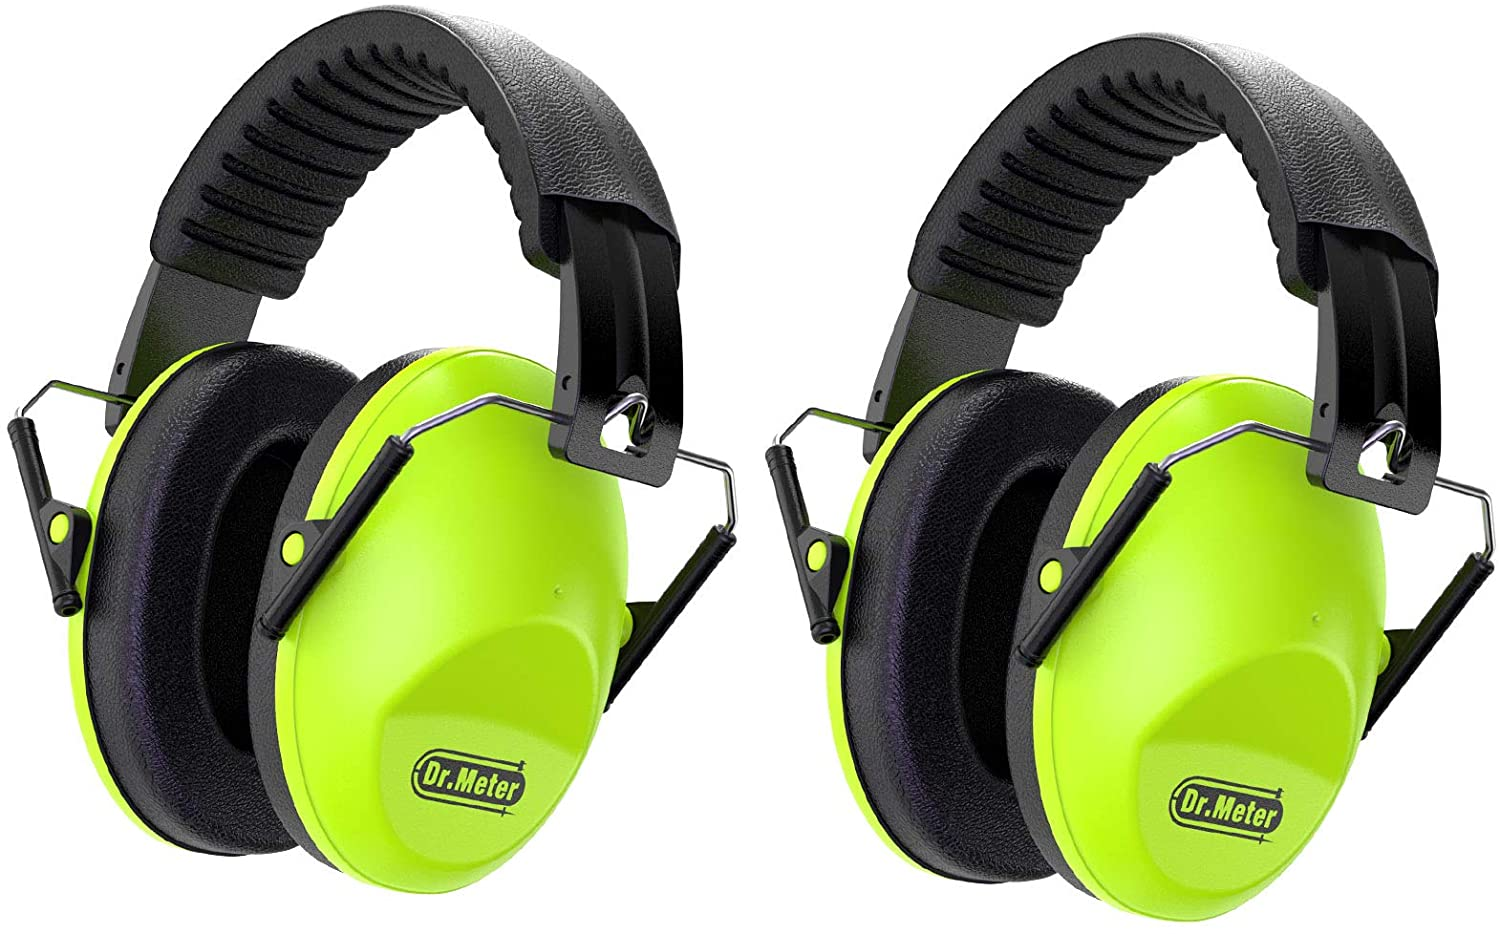 Dr.meter Kids Noise Reduction Earmuffs with 27 NRR Hearing Protection Earmuffs for Shooting Sleeping and Studying, Green-2 Packs - Baby Noise Cancelling Headphones